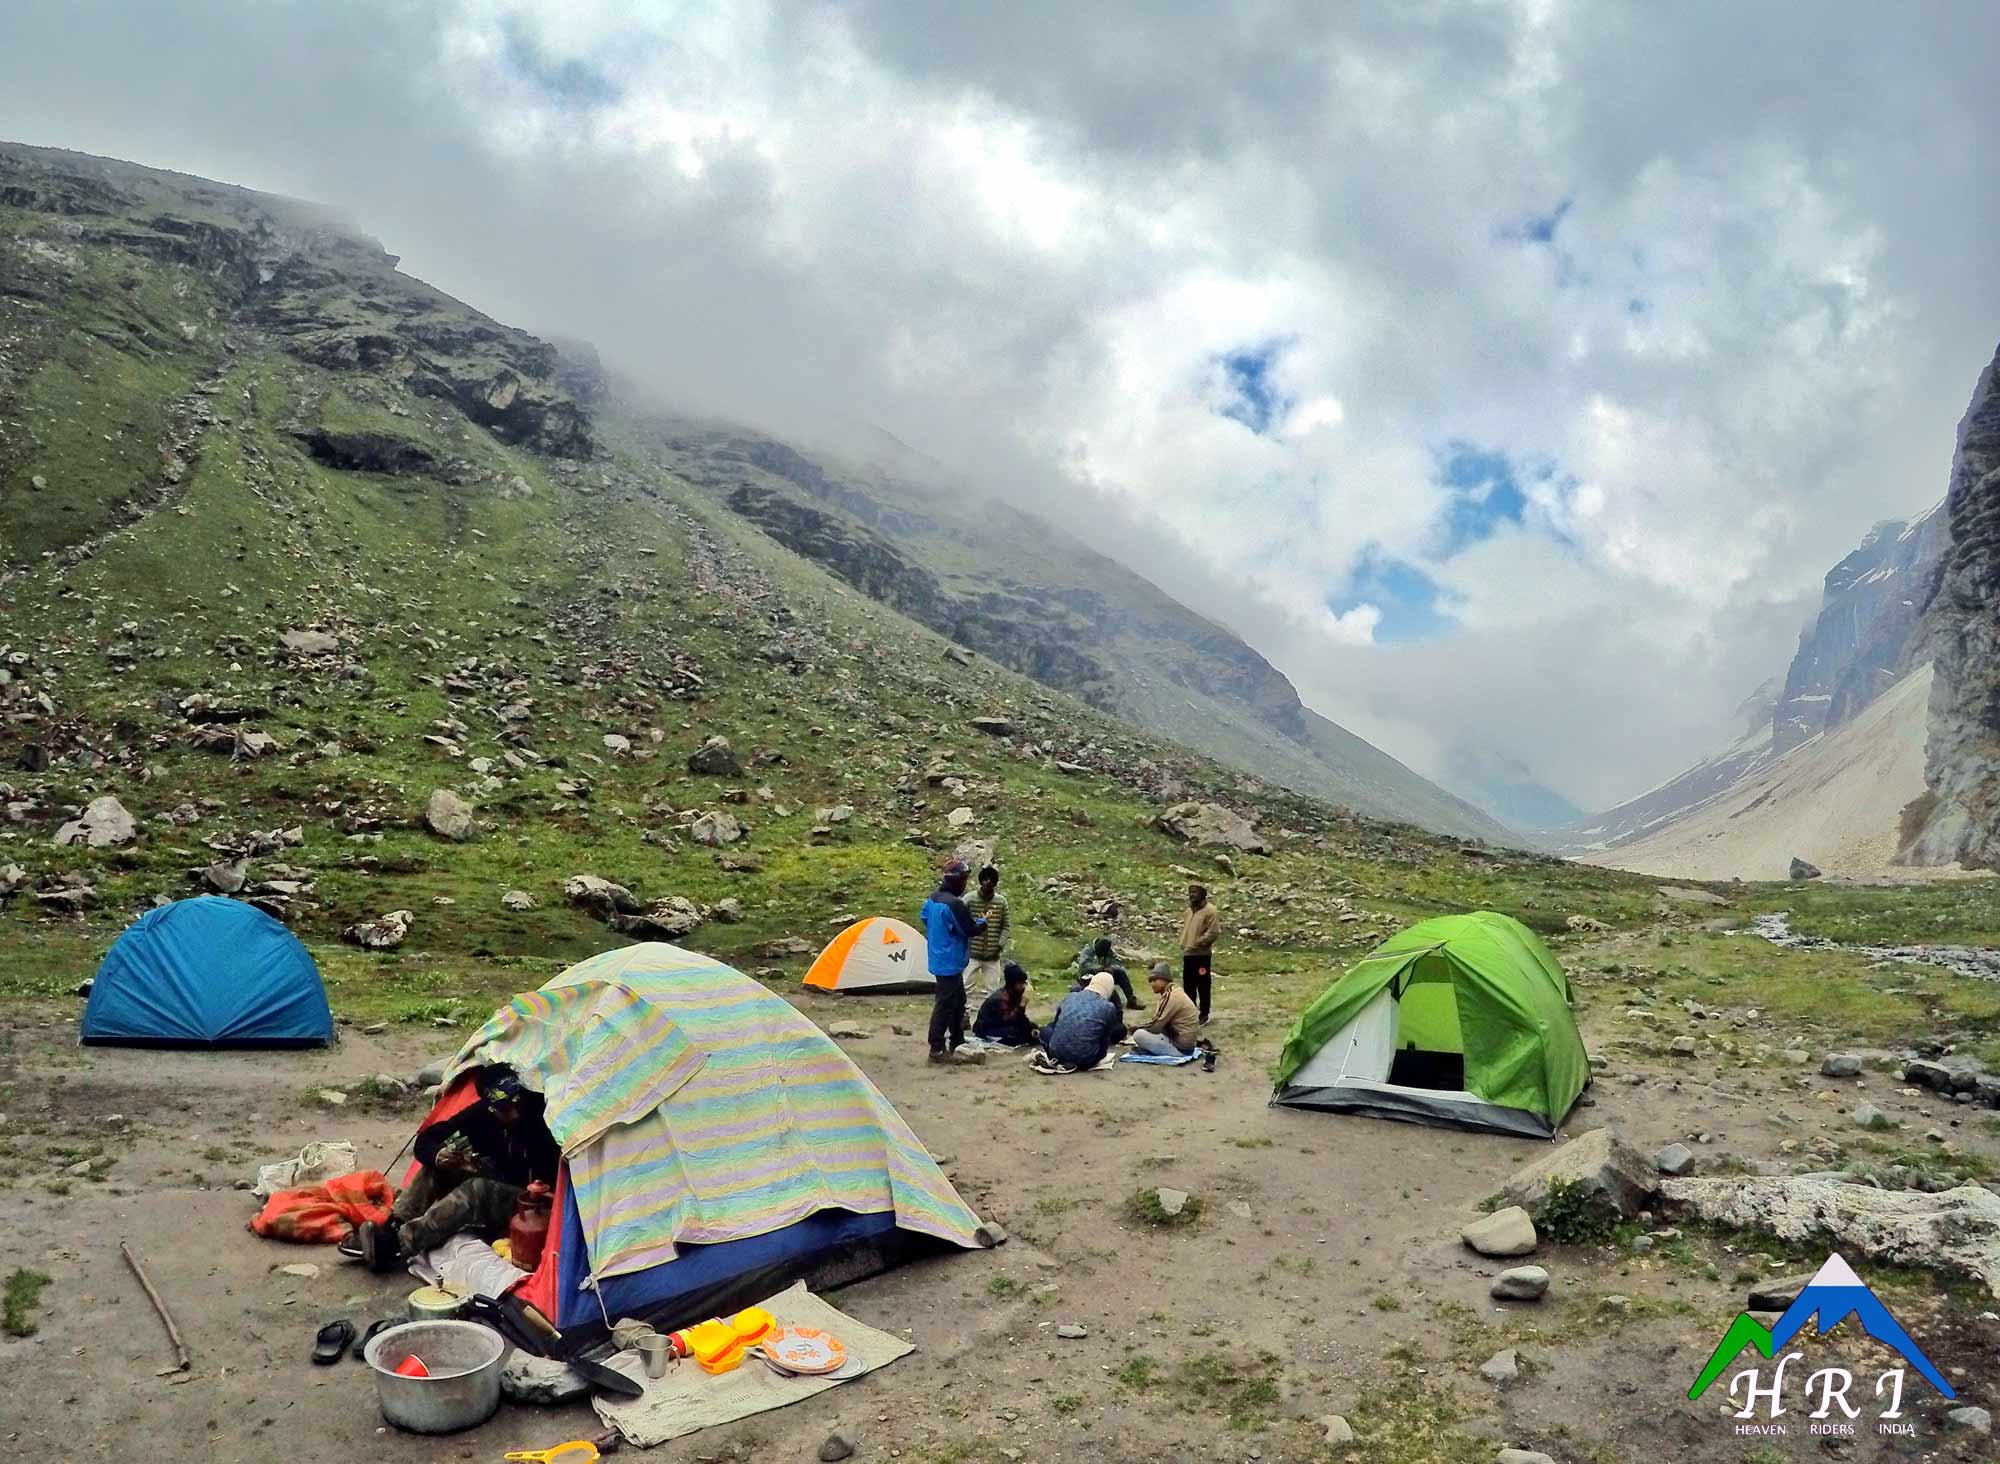 Day 4: Shea Goru (12,900ft) to Chhatru (11,000ft). Drive to Chandratal Lake (5 Hours)